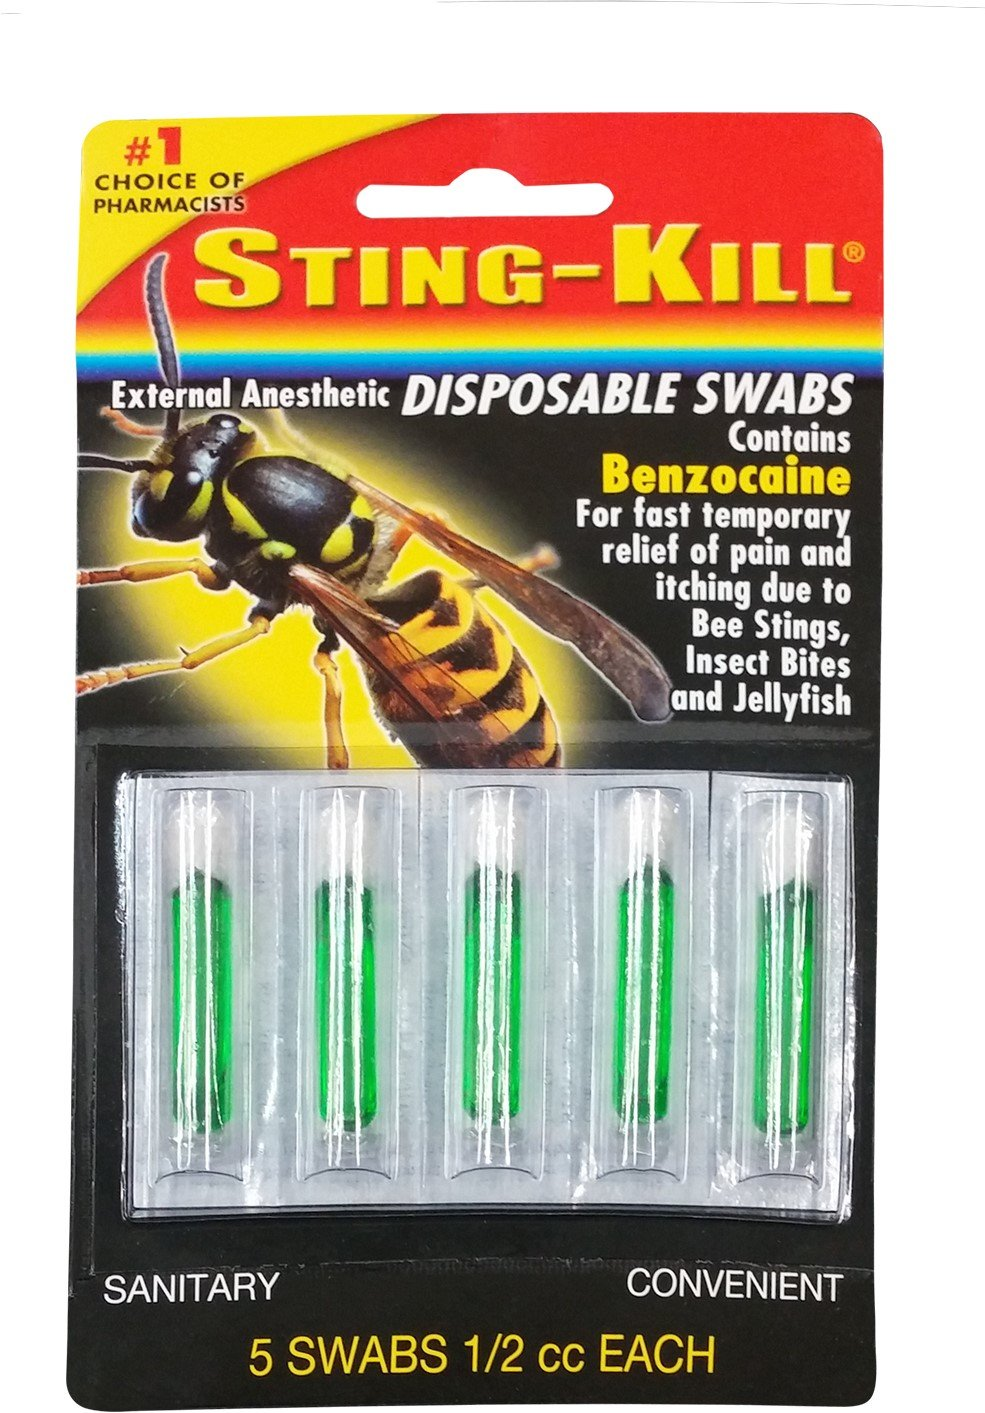 Sting-Kill Disposable Swabs 5 Each (Pack of 12) by Sting-kill